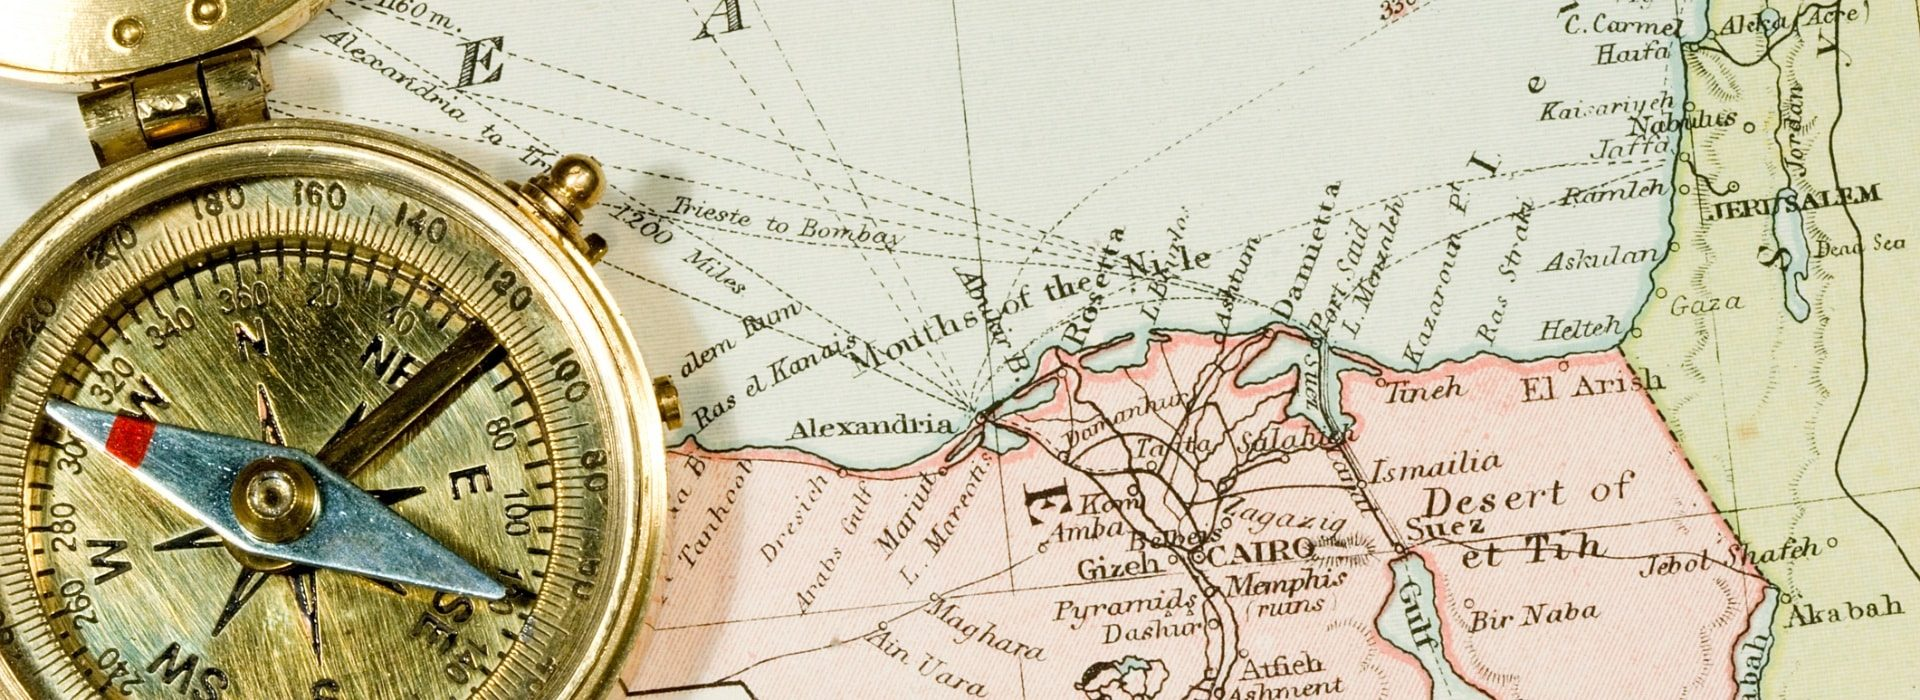 Close up view of a compass and map